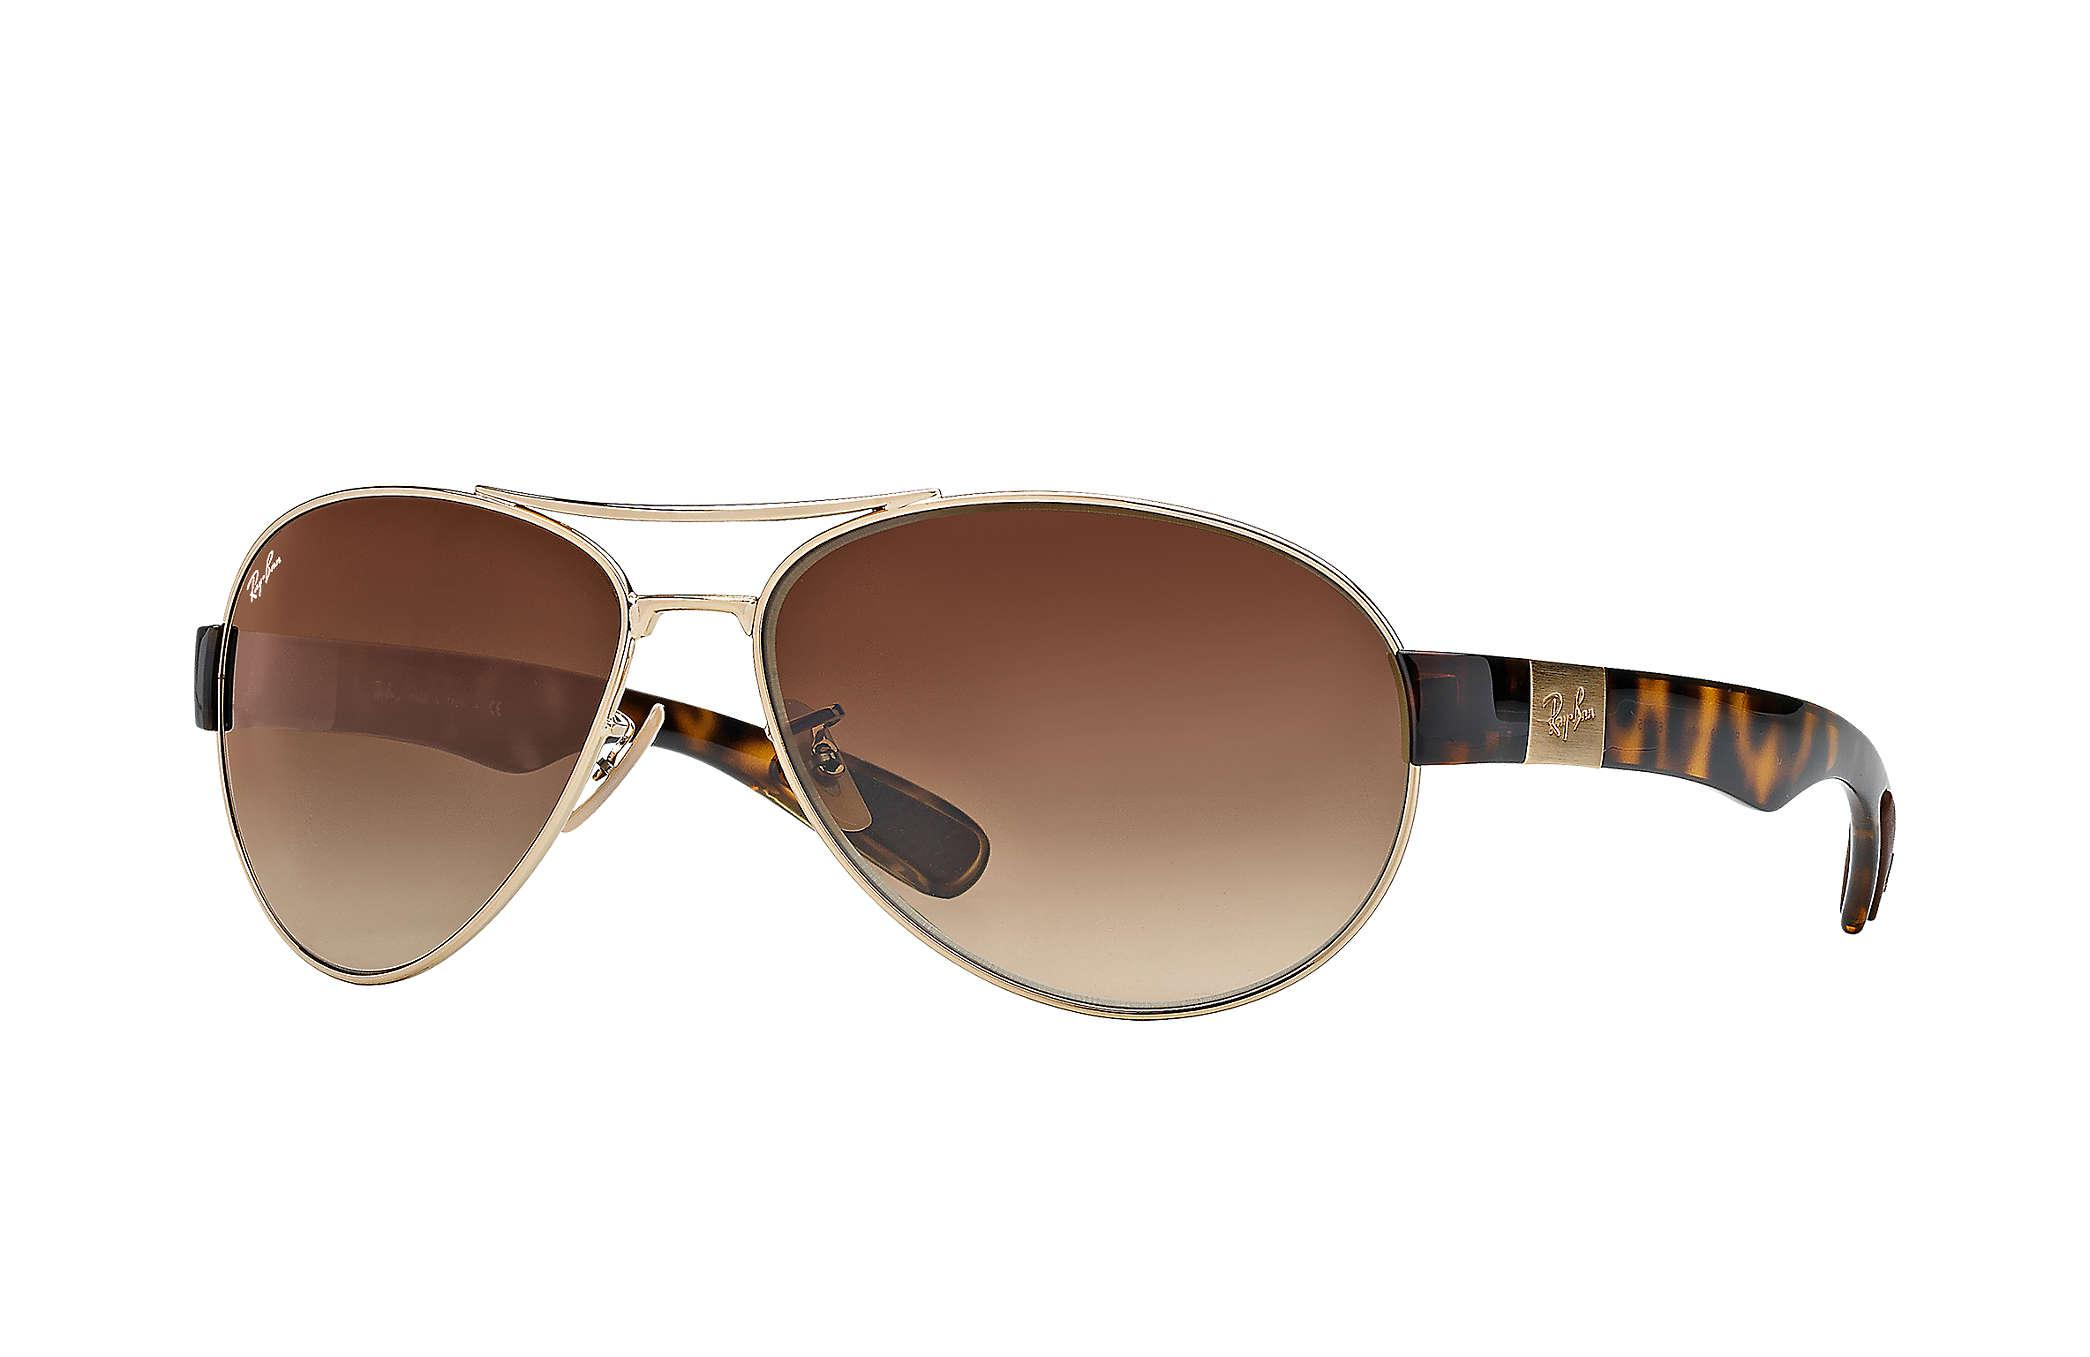 565bca91a1 Ray-ban Rb3509 in Brown